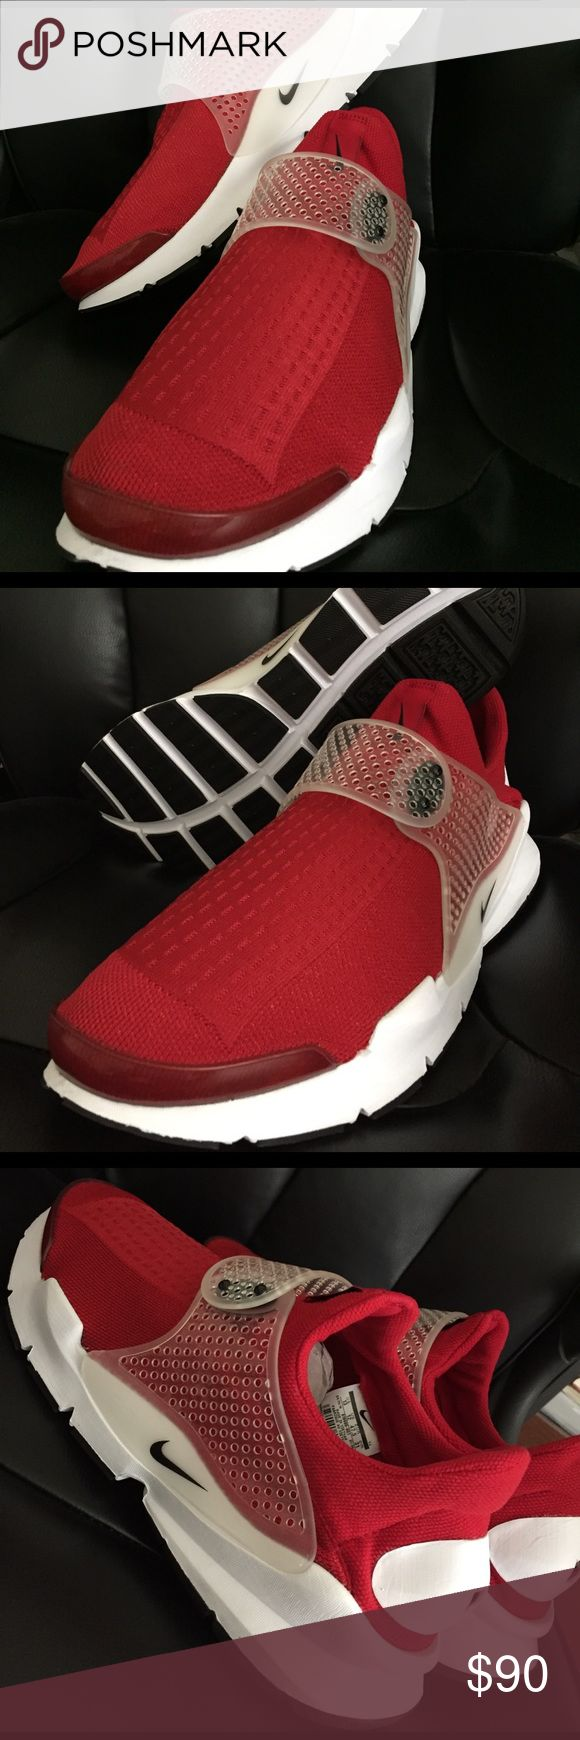 Nike Sock Dart Brand new men's Nike Sock Dart, red color size 13, no trades no low balling. MSRP$ 130. Nike Shoes Athletic Shoes